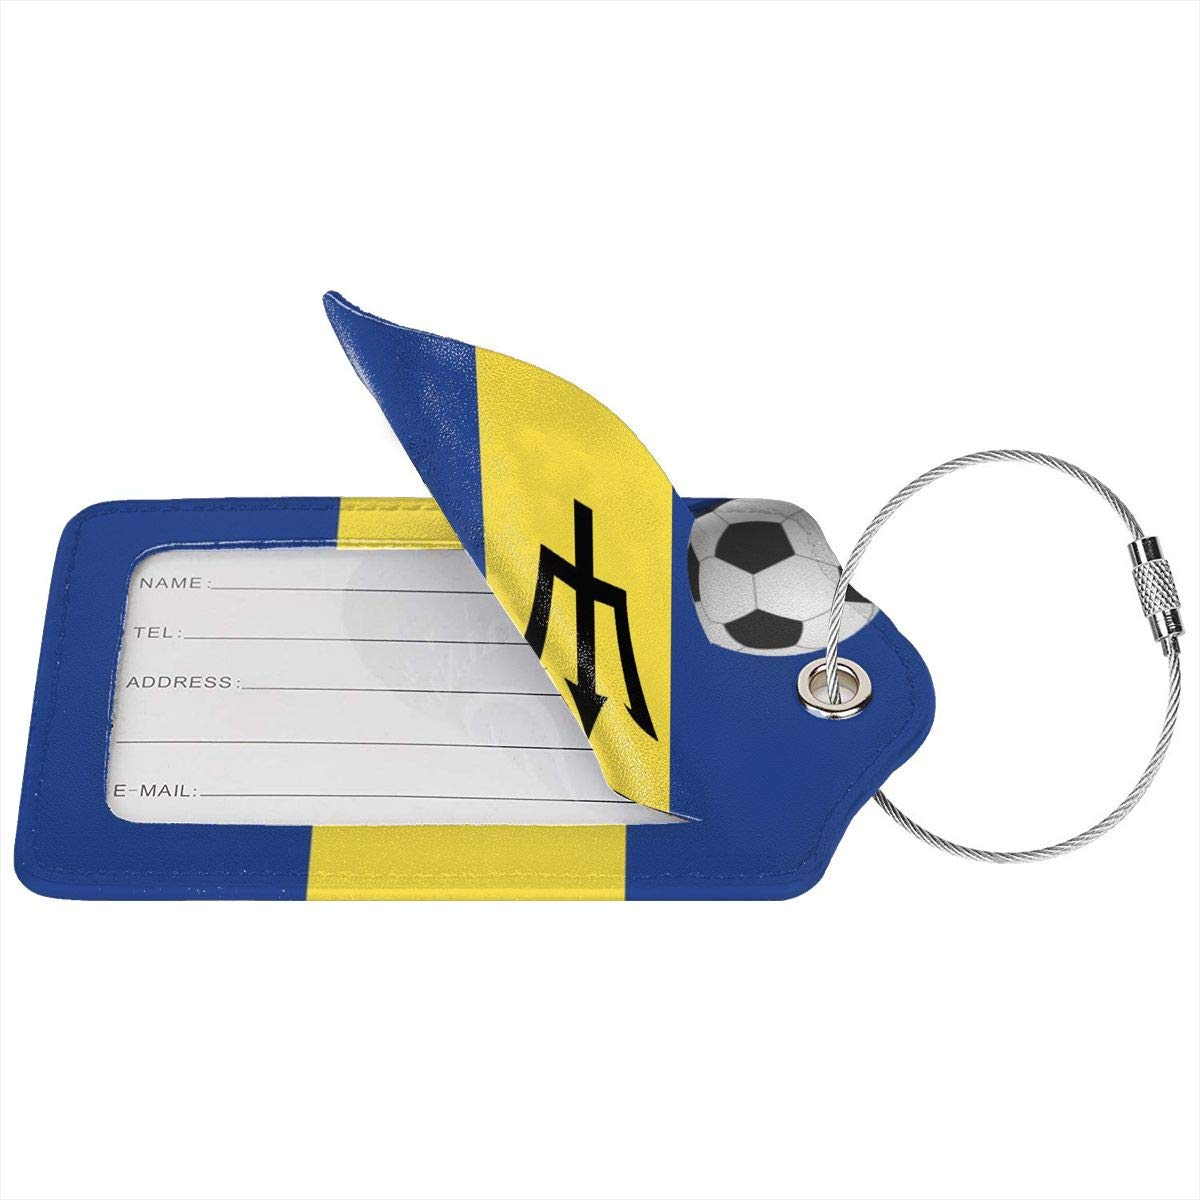 ROLLING HOP Barbados Flag and Soccer Ball Travel Luggage Tag Cool Employees Card Luggage Tag Holders Travel ID Identification Labels.